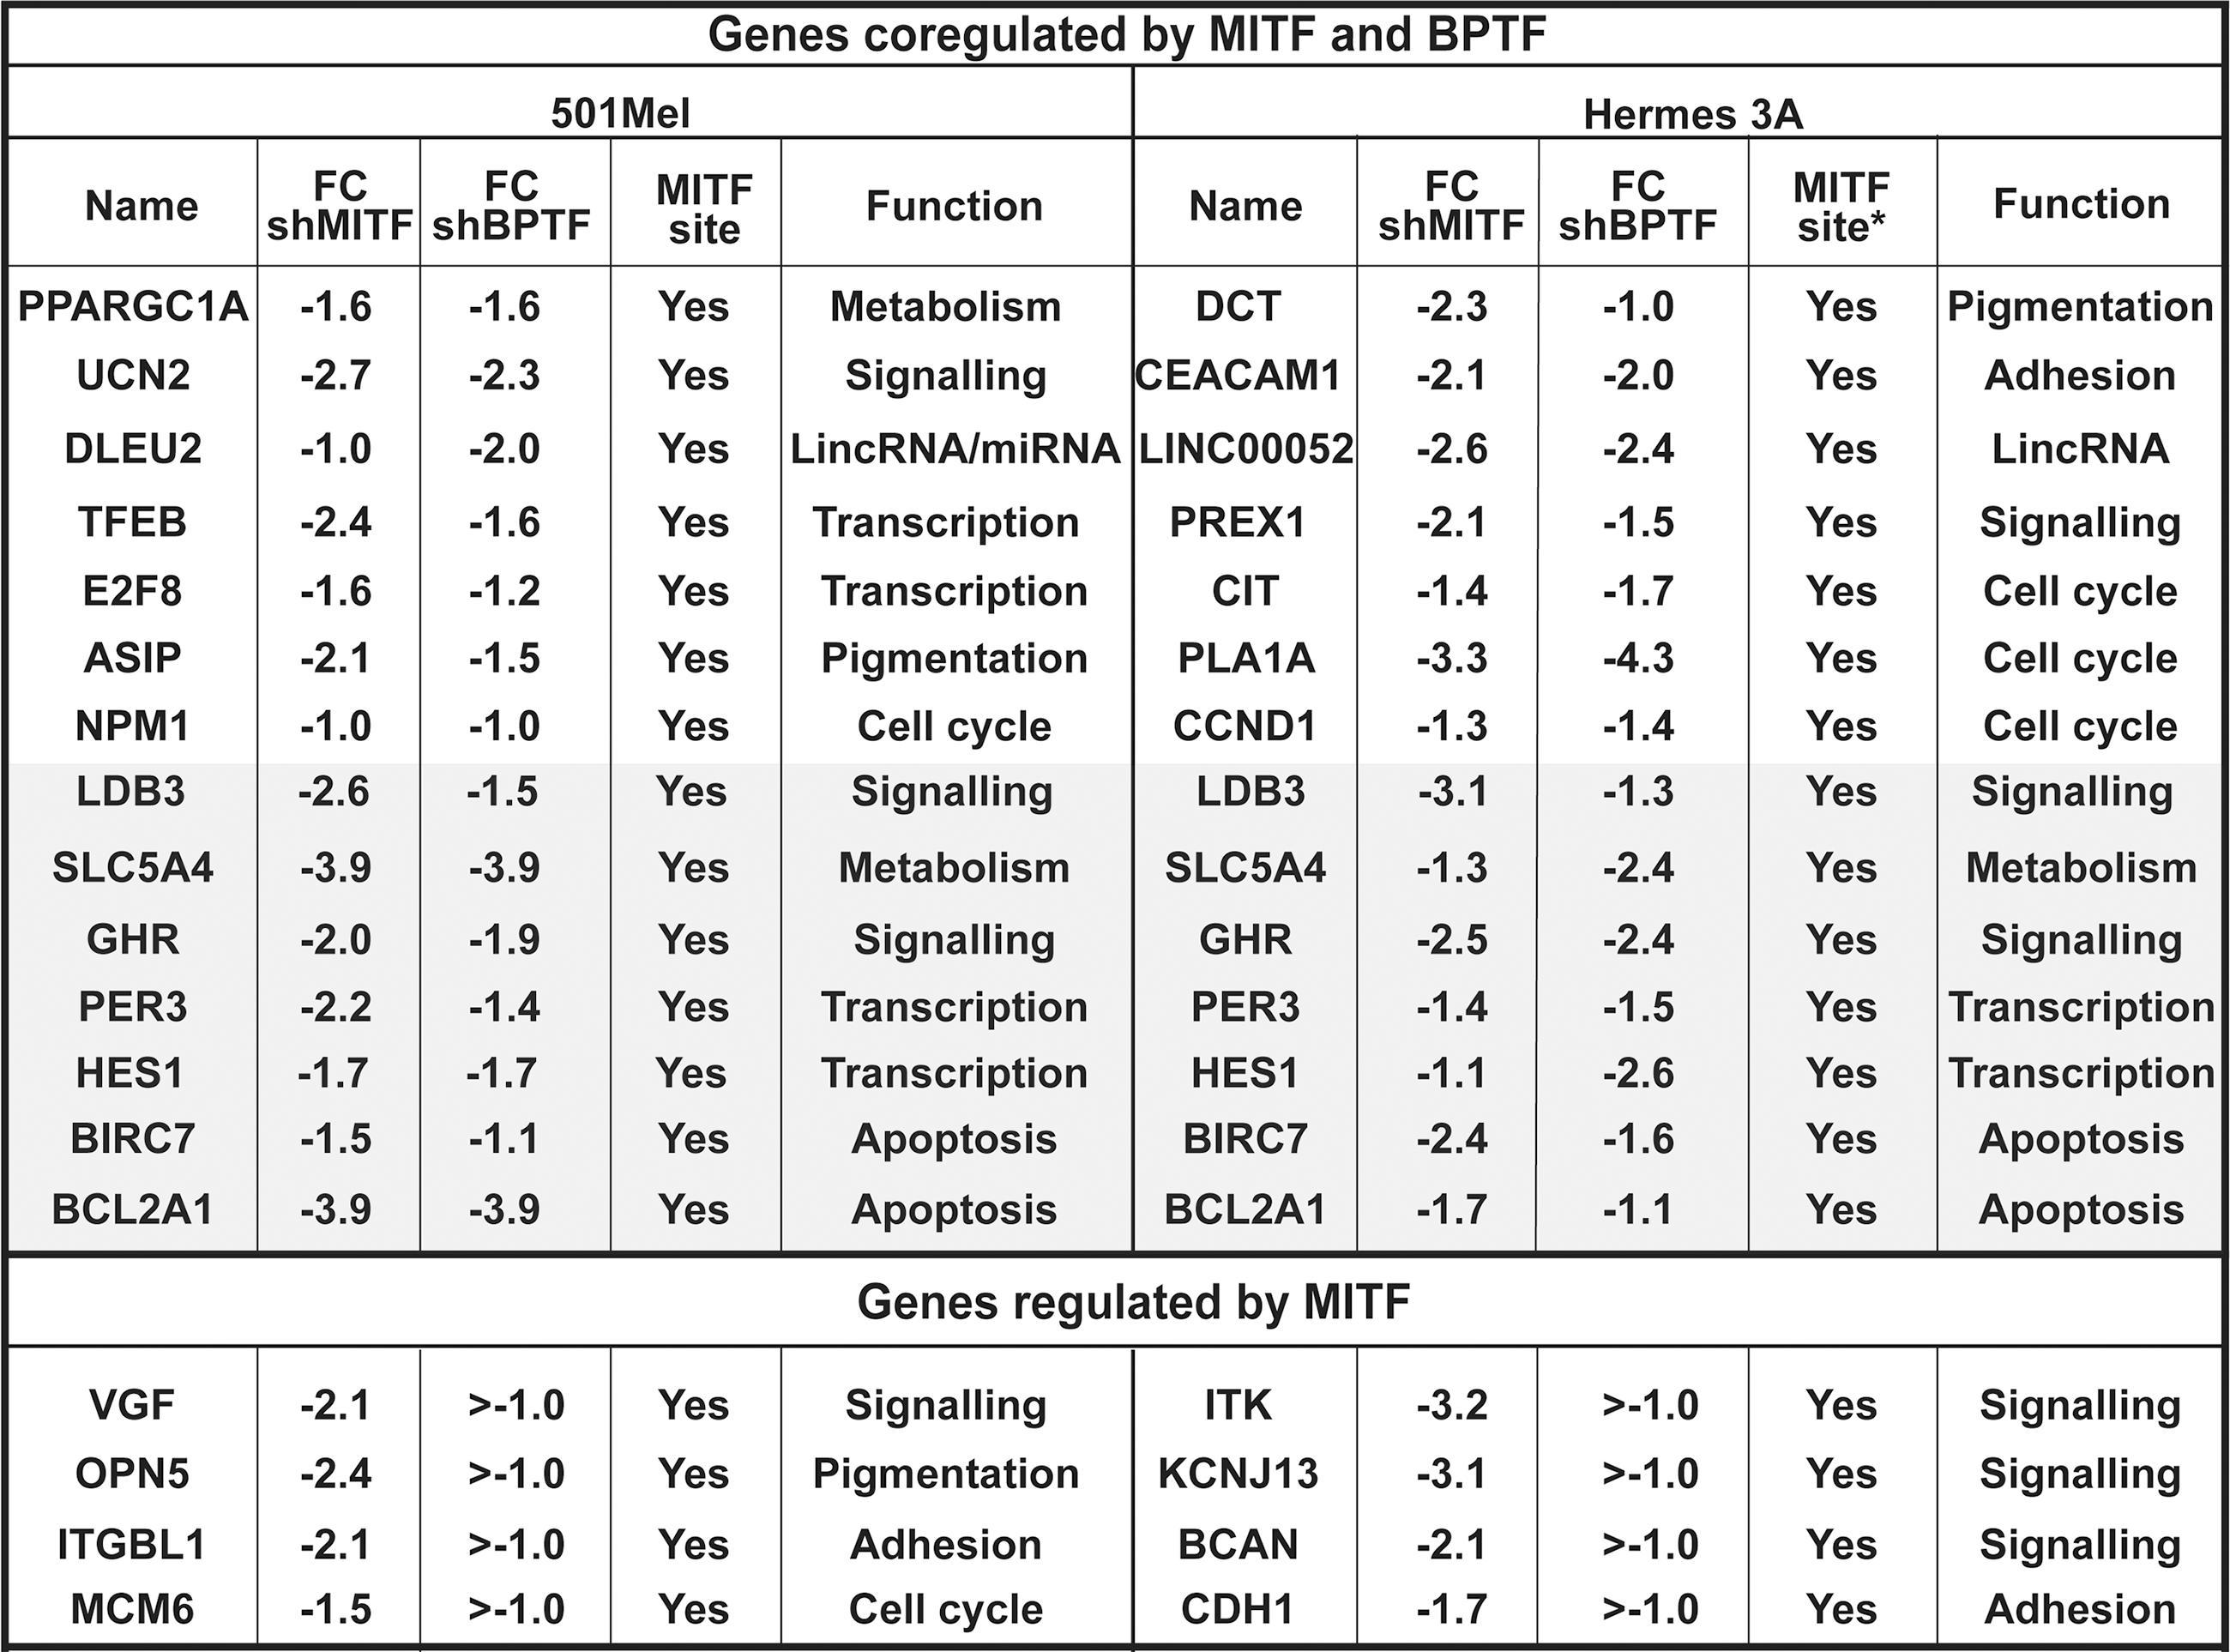 Co-regulated genes in 501Mel and Hermes 3A cells.